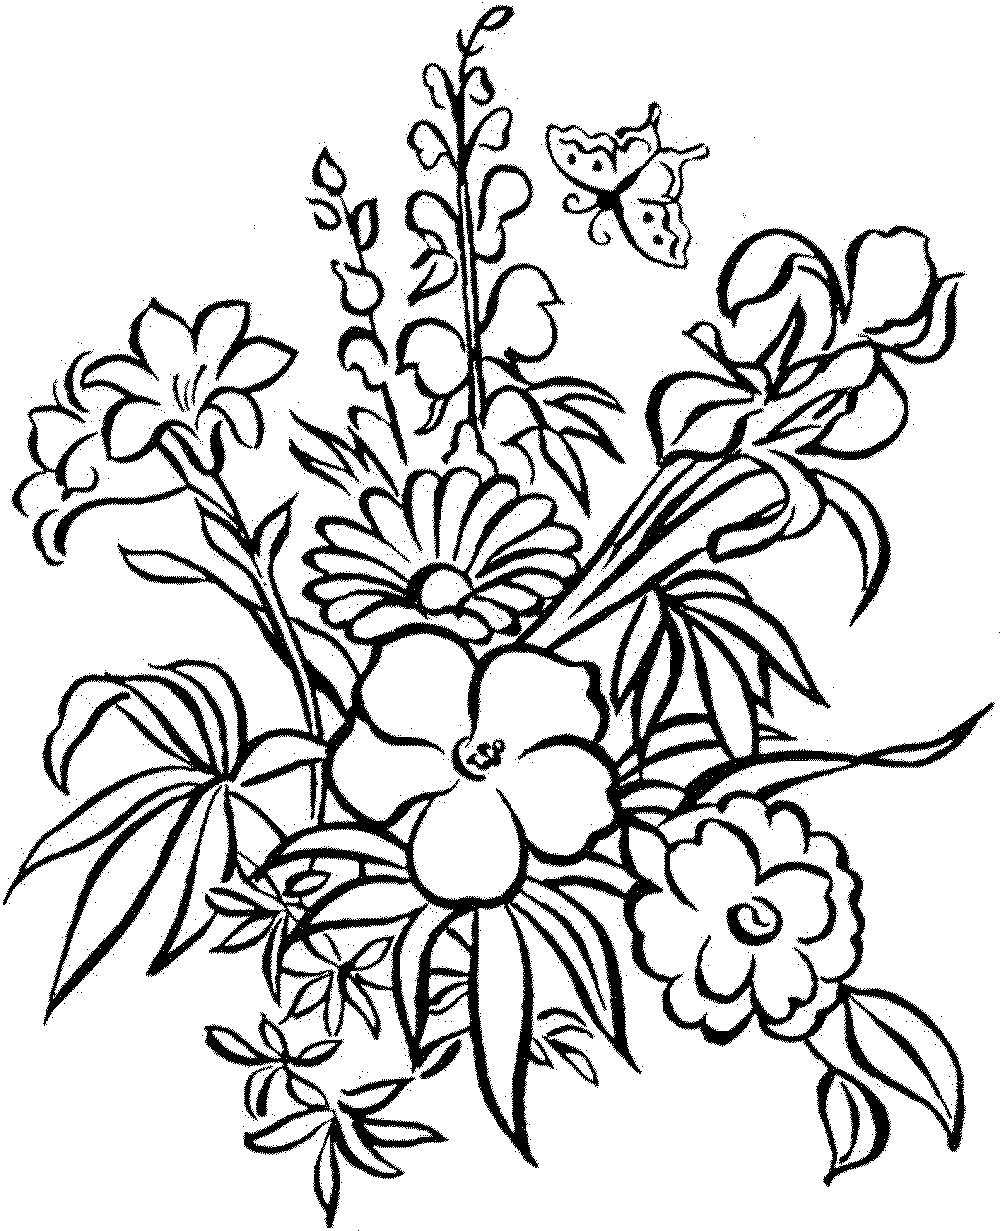 free printable flower coloring pages free printable flower coloring pages for kids best printable coloring free pages flower